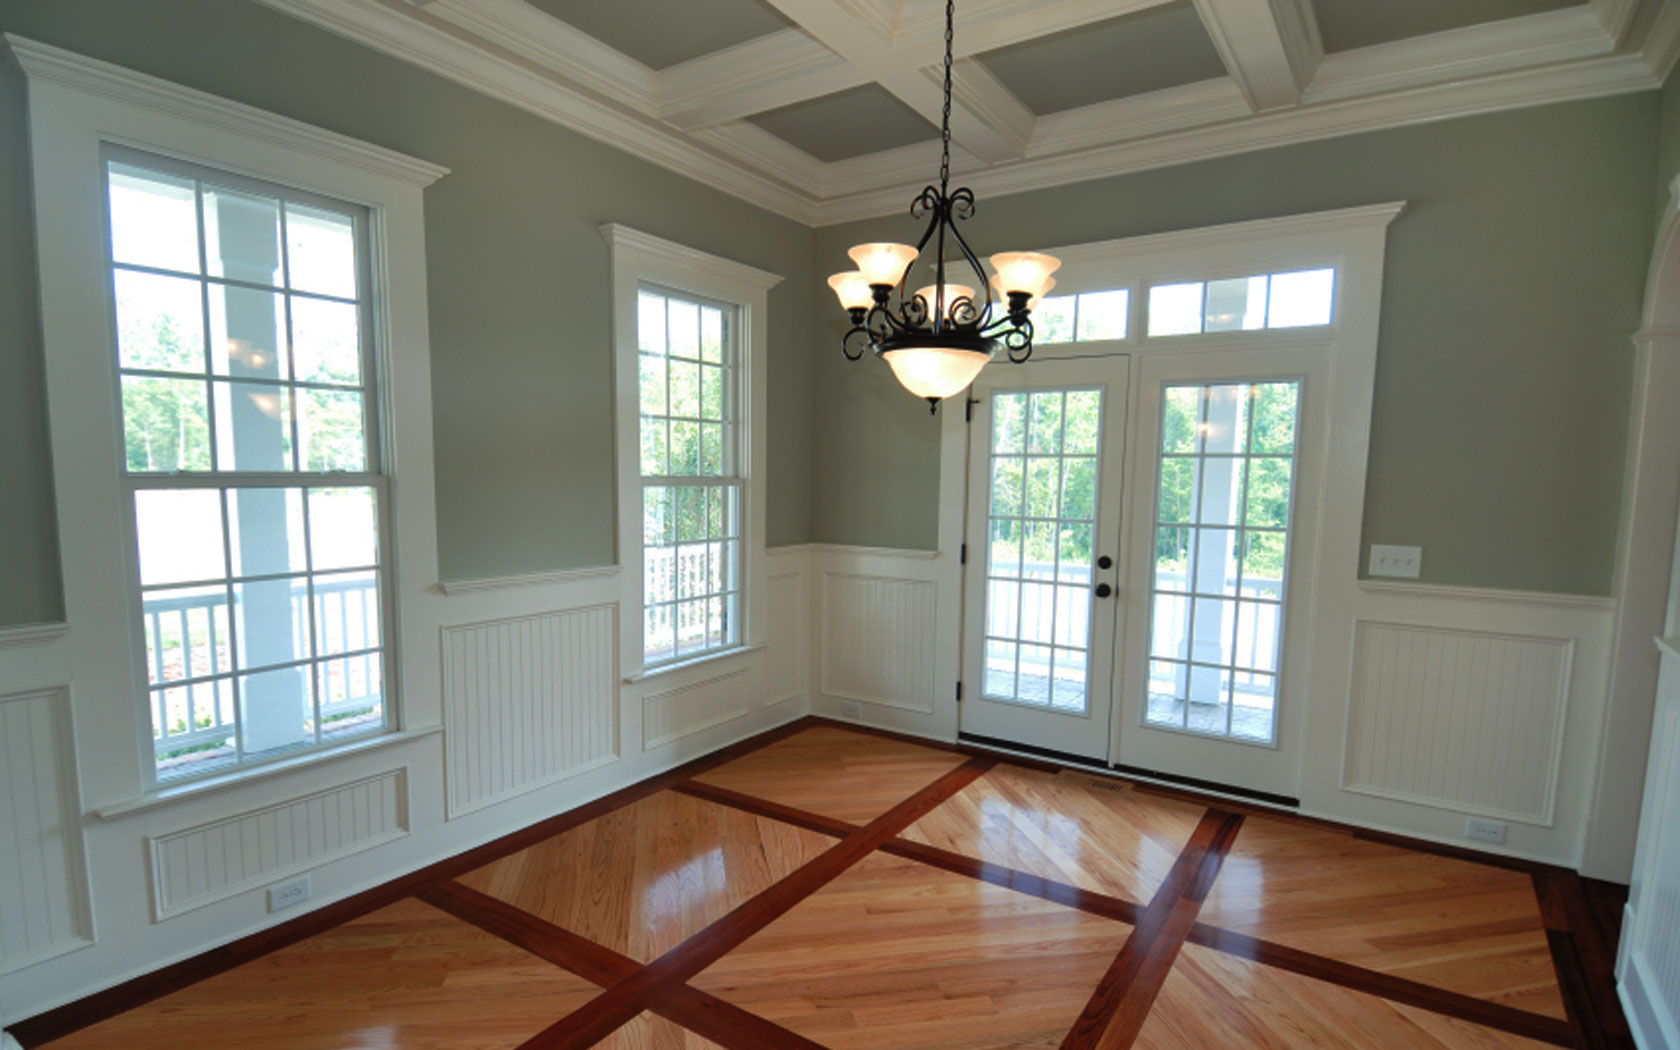 Interior Trim Paint Ideas : Interior paint project tips